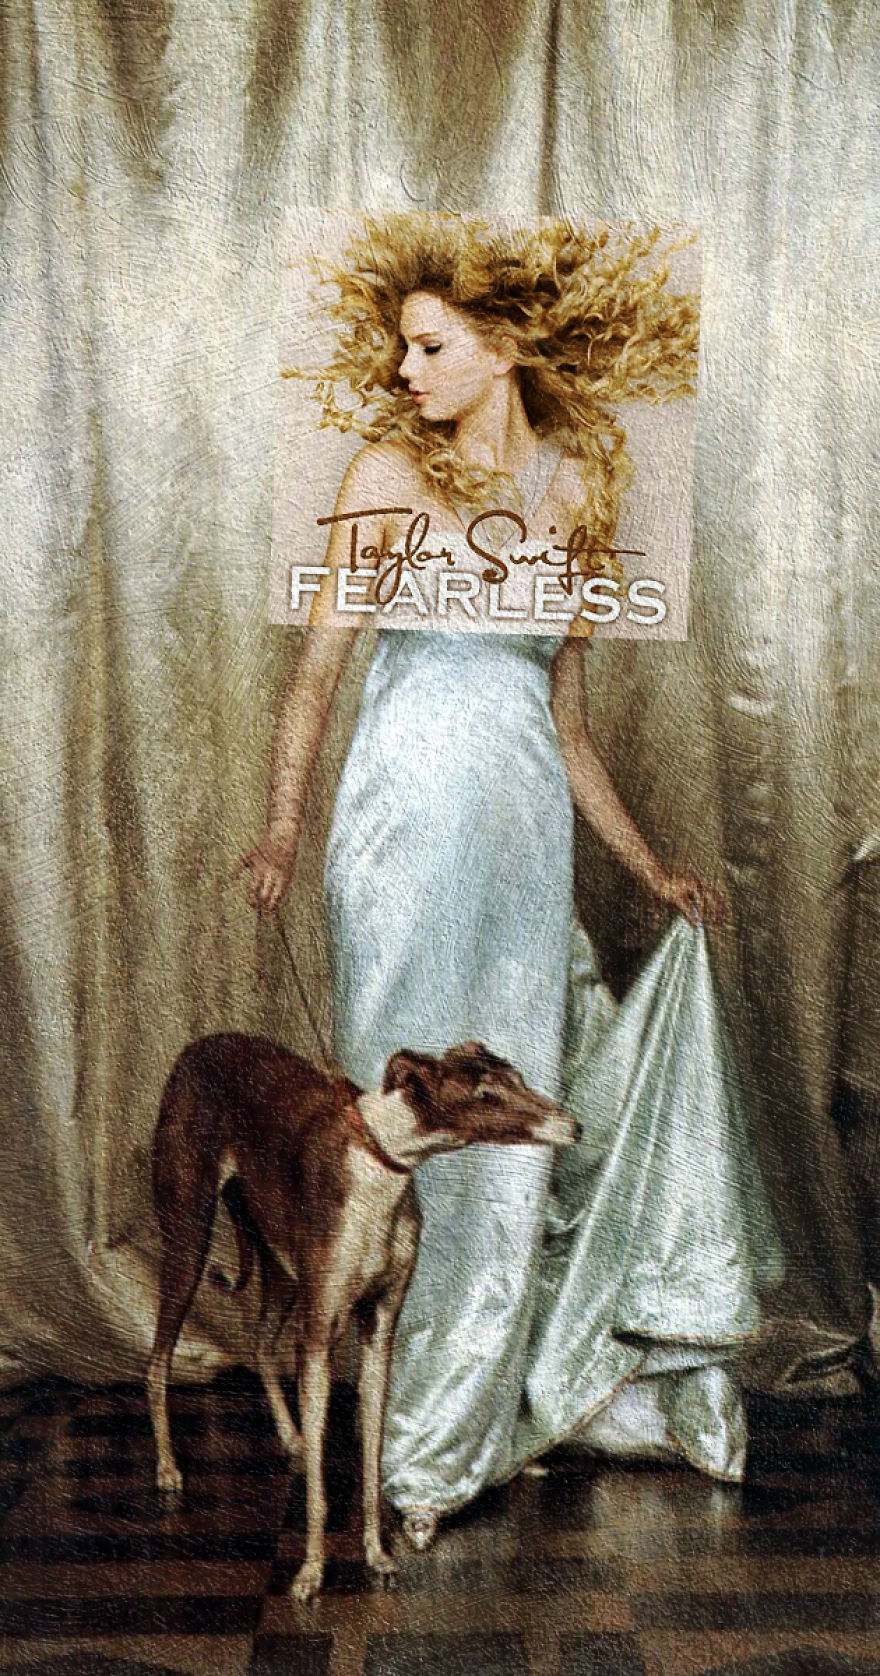 Fearless By Taylor Swift + Good Companions By Vittorio Reggianini